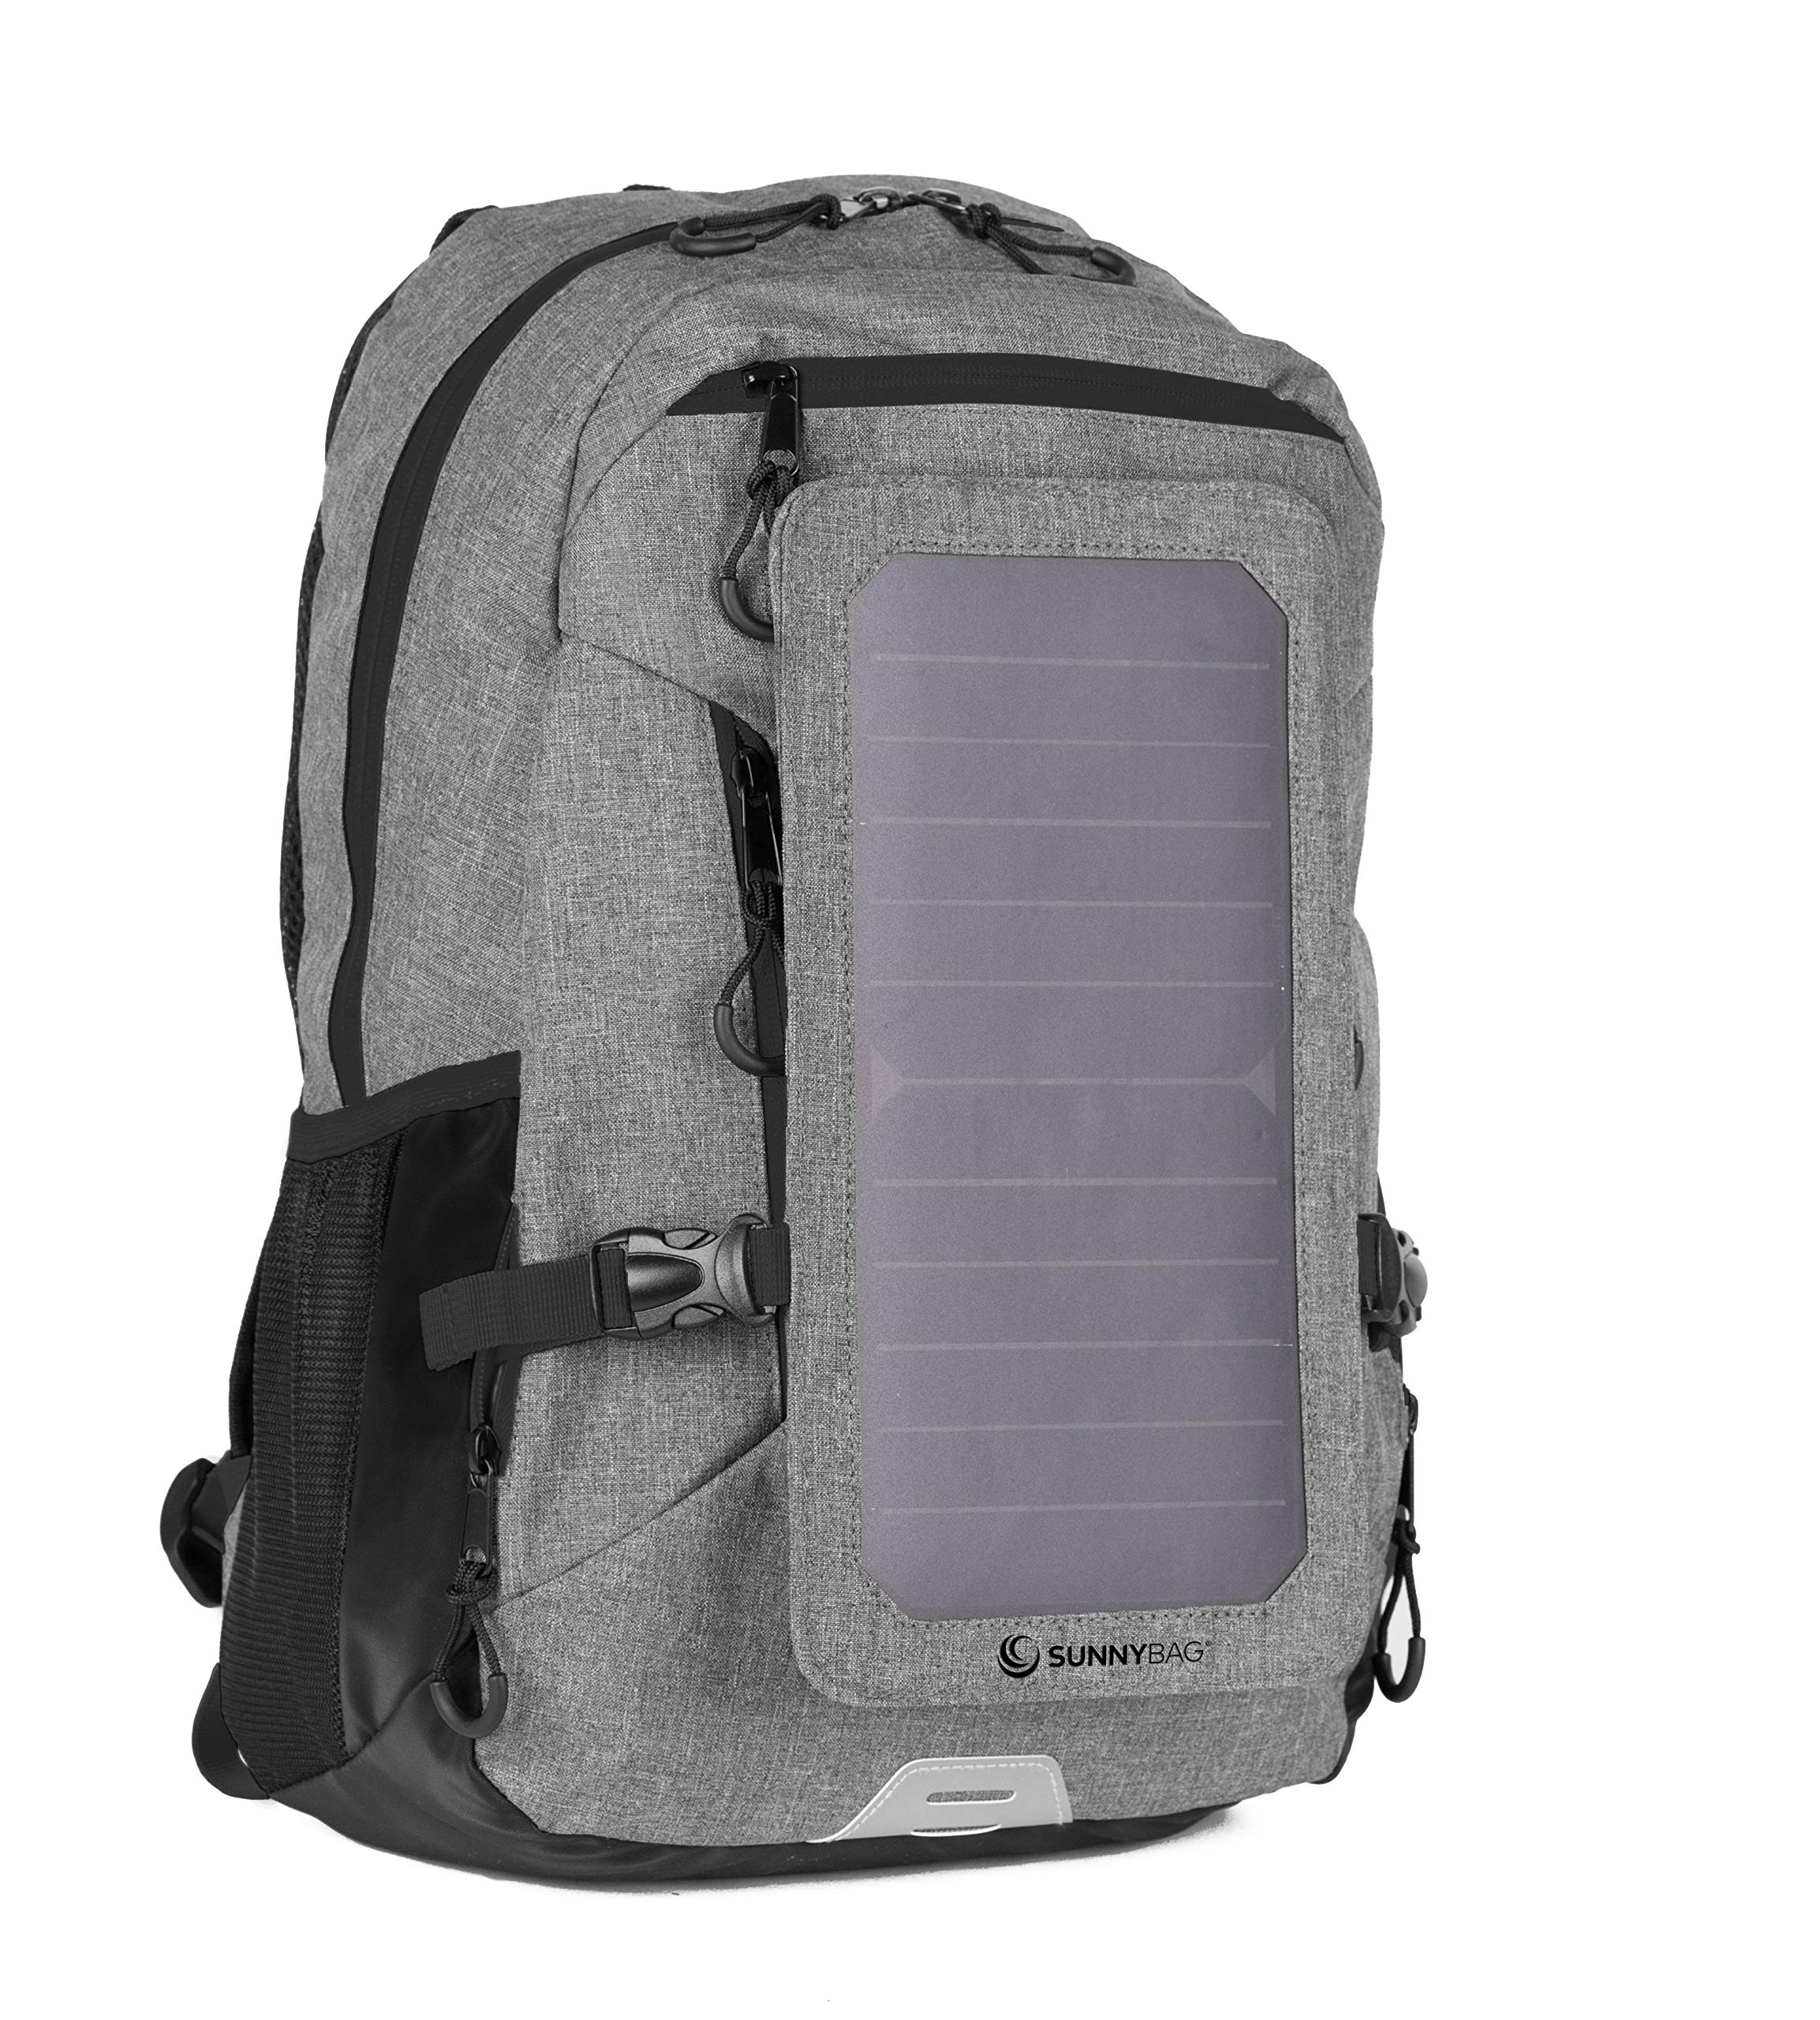 Backpack with Solar-Panel by SUNNYBAG Explorer+   solarbag Solar Charger   World's Strongest solarpanel for Smartphone Charging on The go   Grey/Black